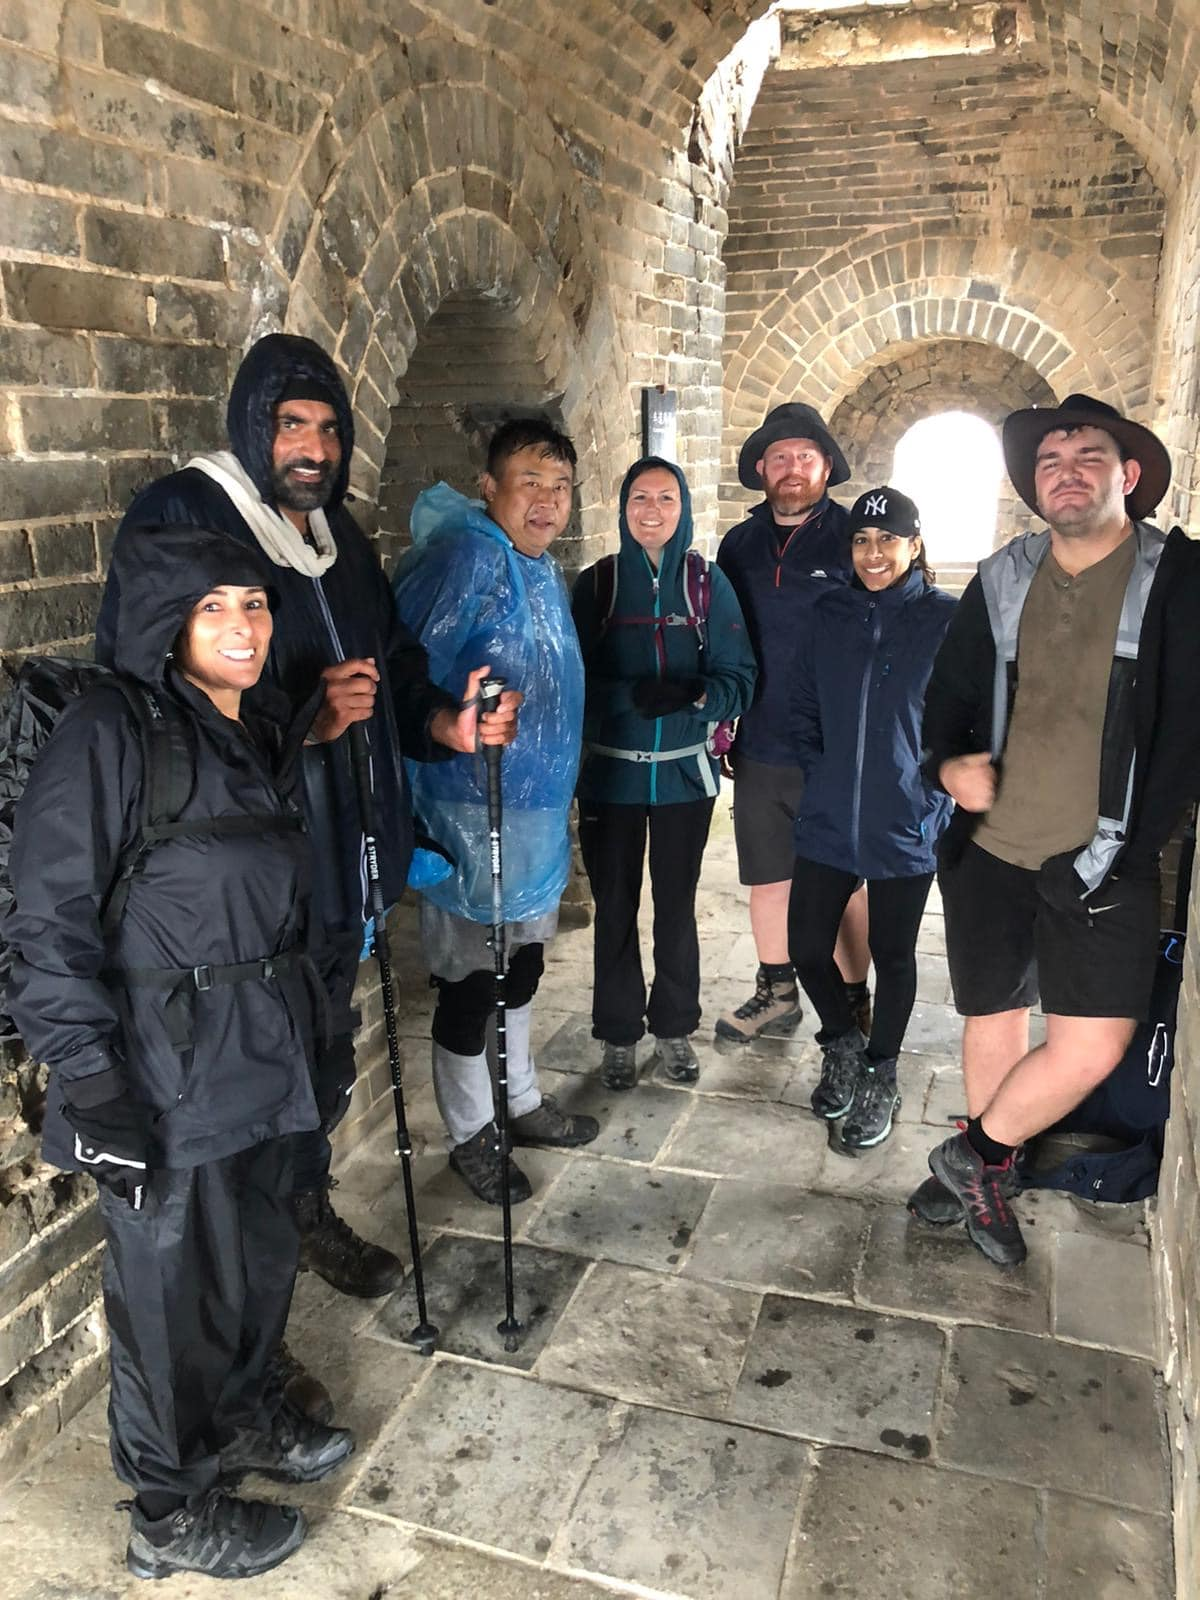 Bucketlisters trekking the Great Wall of China